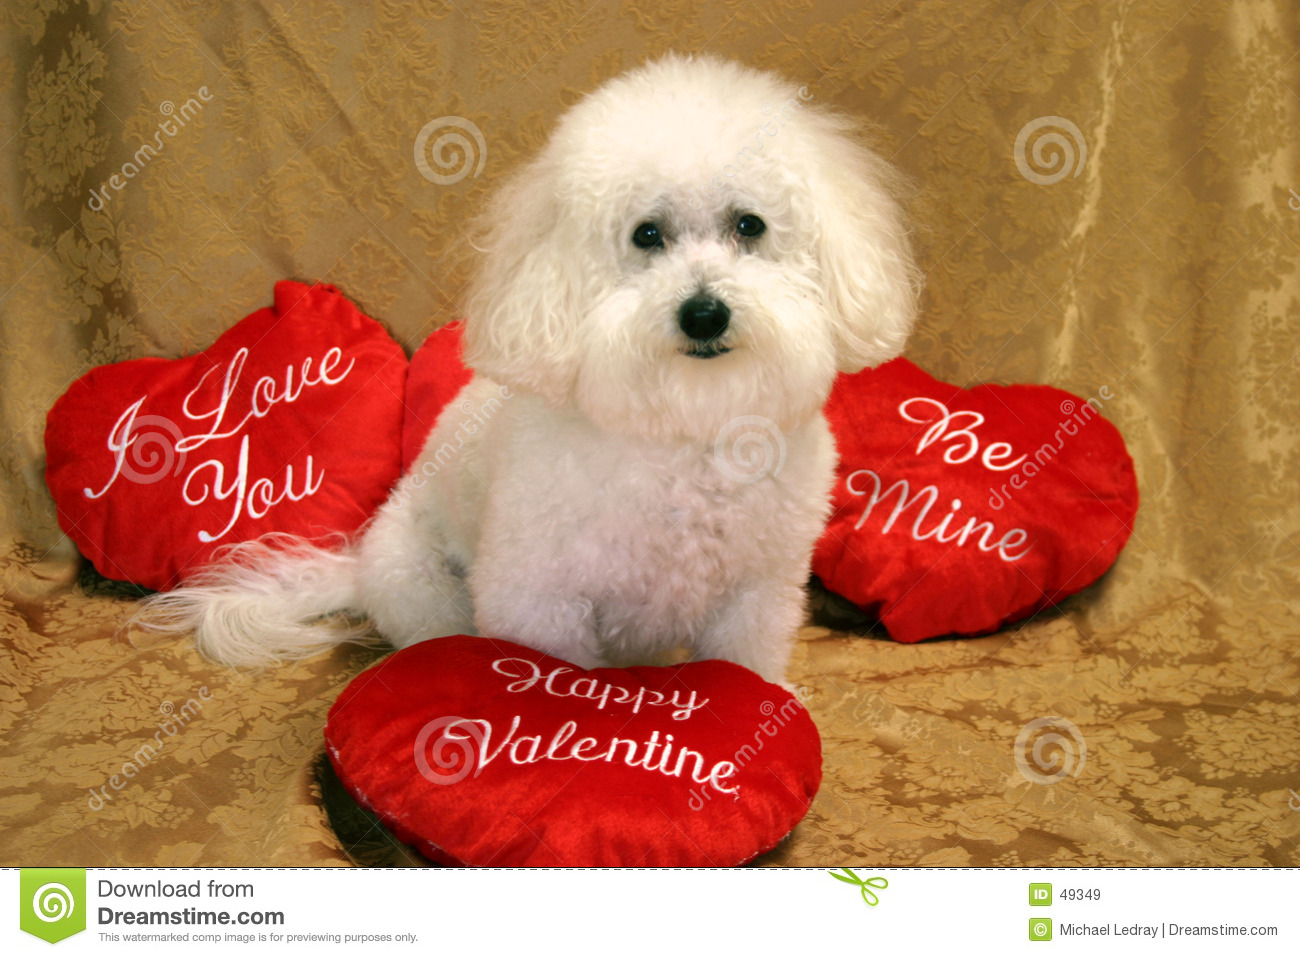 Download Beau #2 stock image. Image of frise, holiday, animal, puppy - 49349